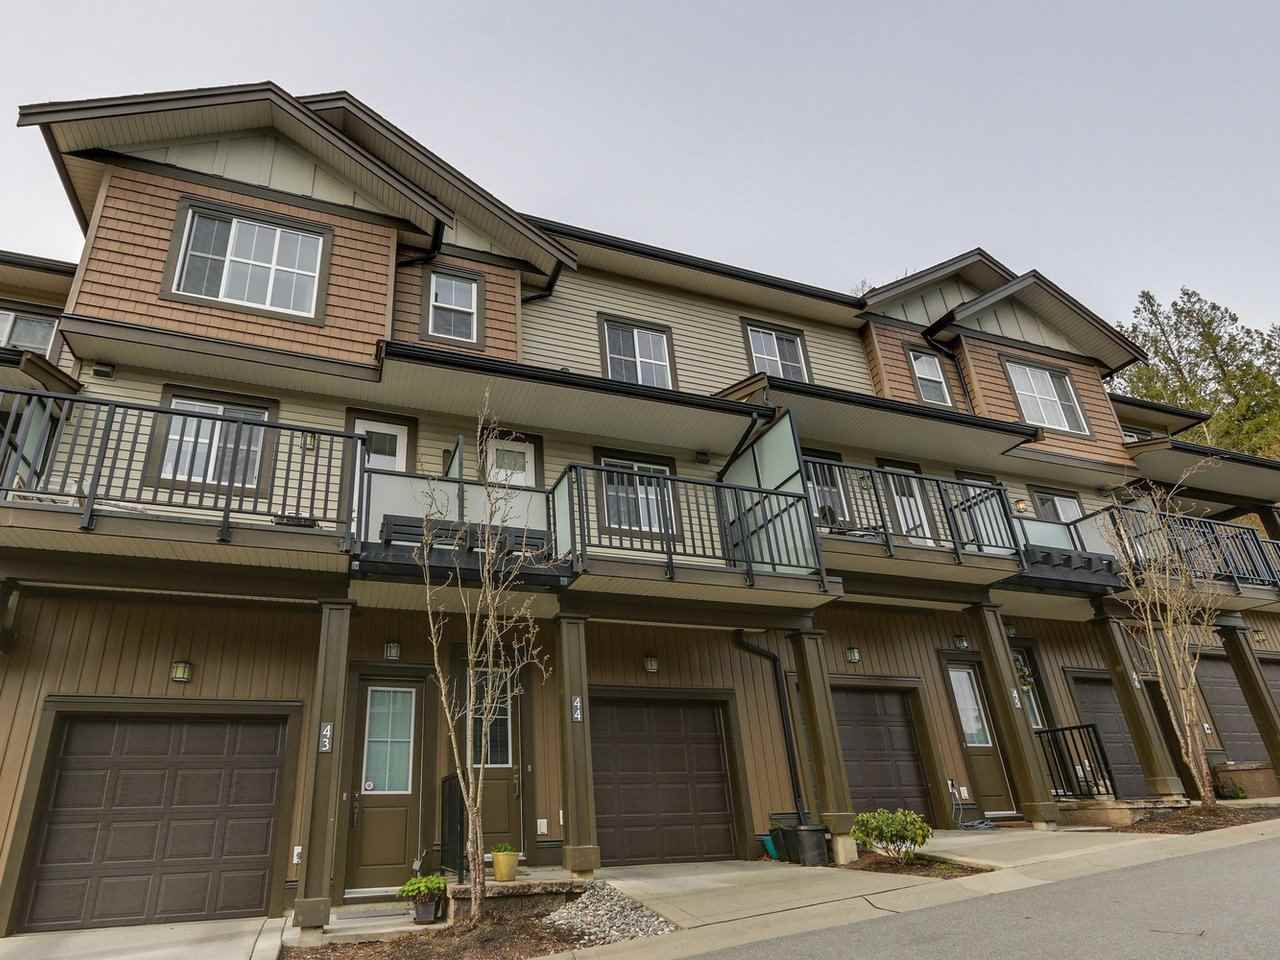 """Main Photo: 43 11176 GILKER HILL Road in Maple Ridge: Cottonwood MR Townhouse for sale in """"Blue Tree Homes at Kanaka Creek"""" : MLS®# R2255593"""